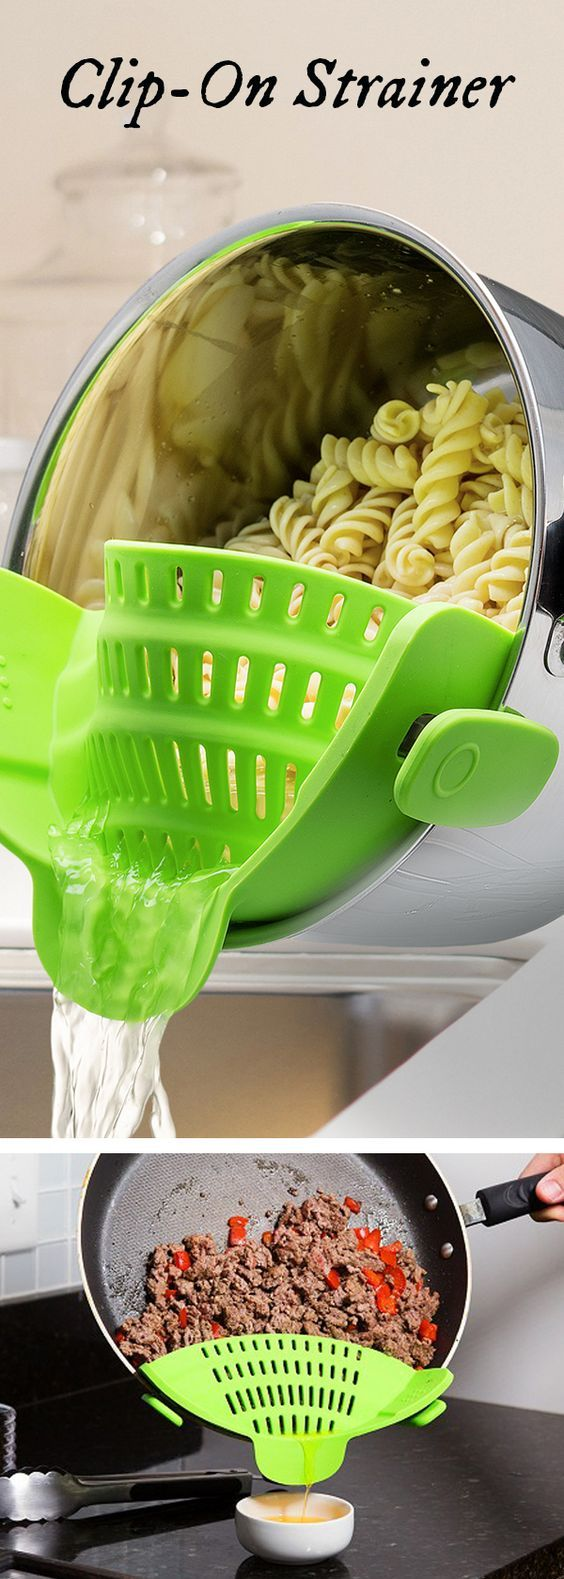 22 kitchen gadgets gifts for mother's day you should send ! is part of Kitchen gadgets, Cool kitchens, Cooking gadgets, Kitchen items, Gadgets, Cooking - Still wondering what to send for mother's day   this post will solve your issue  check those 22 kitchen gadgets gifts for mother's day you should send !